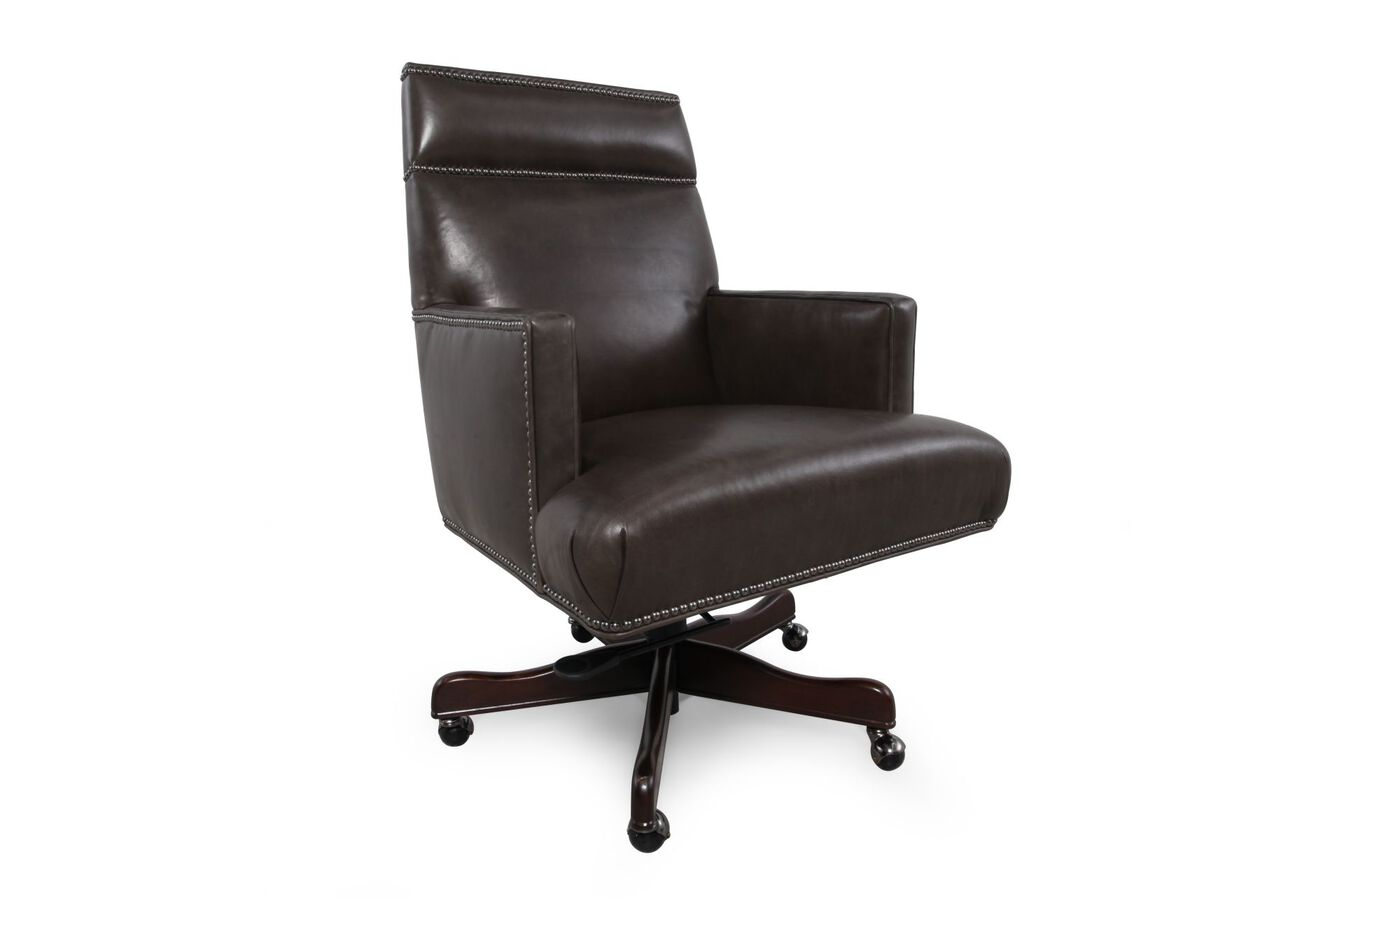 Leather Nailhead Accented Executive Desk Chair In Charcoal